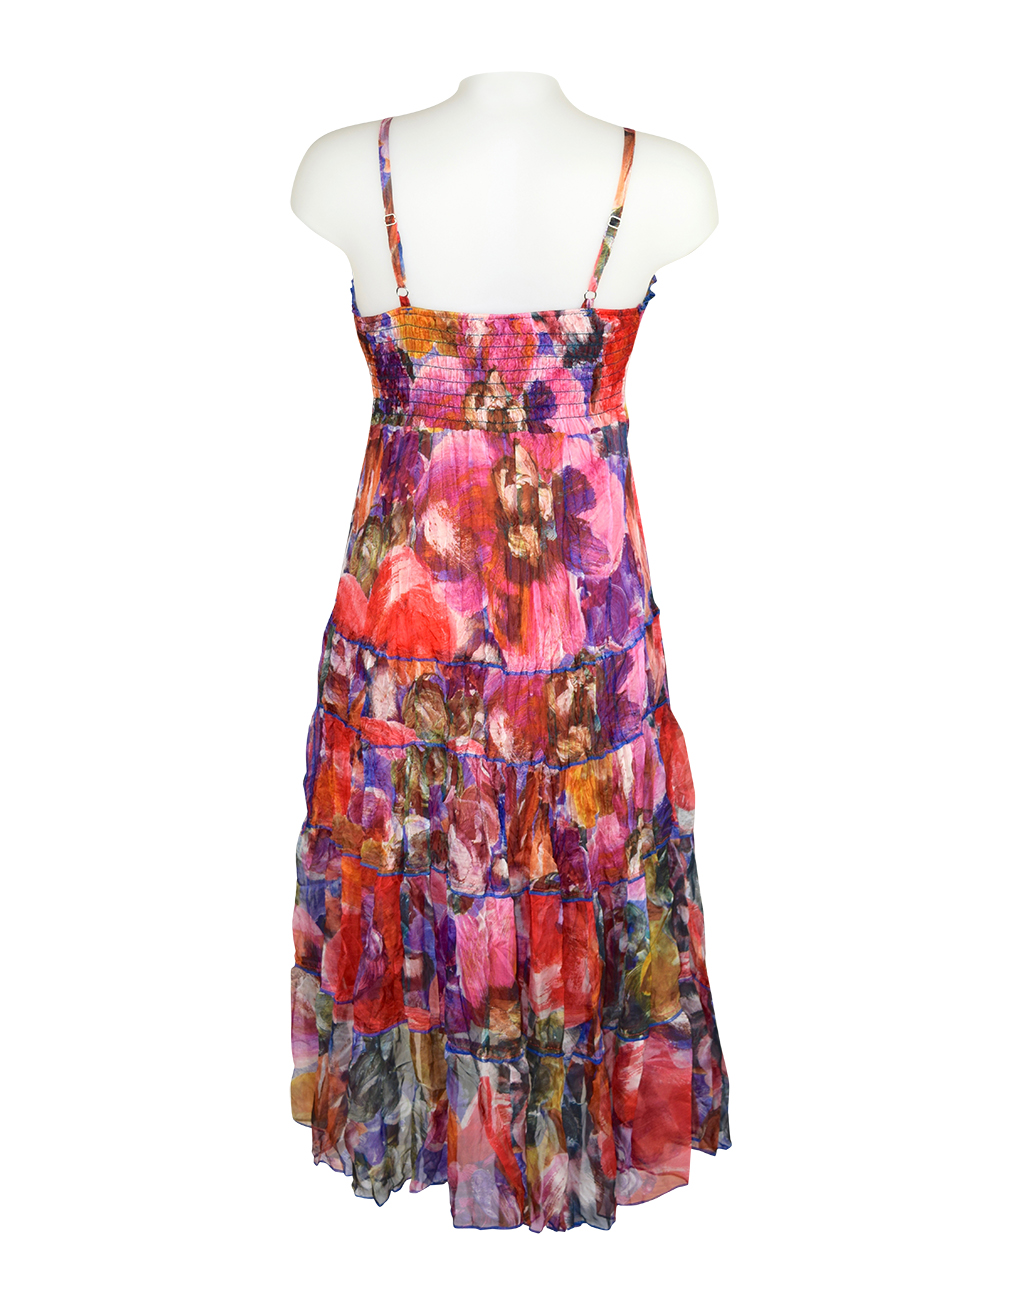 Sensations Pour Elle Red Mix Abstract Maxi Dress One size2